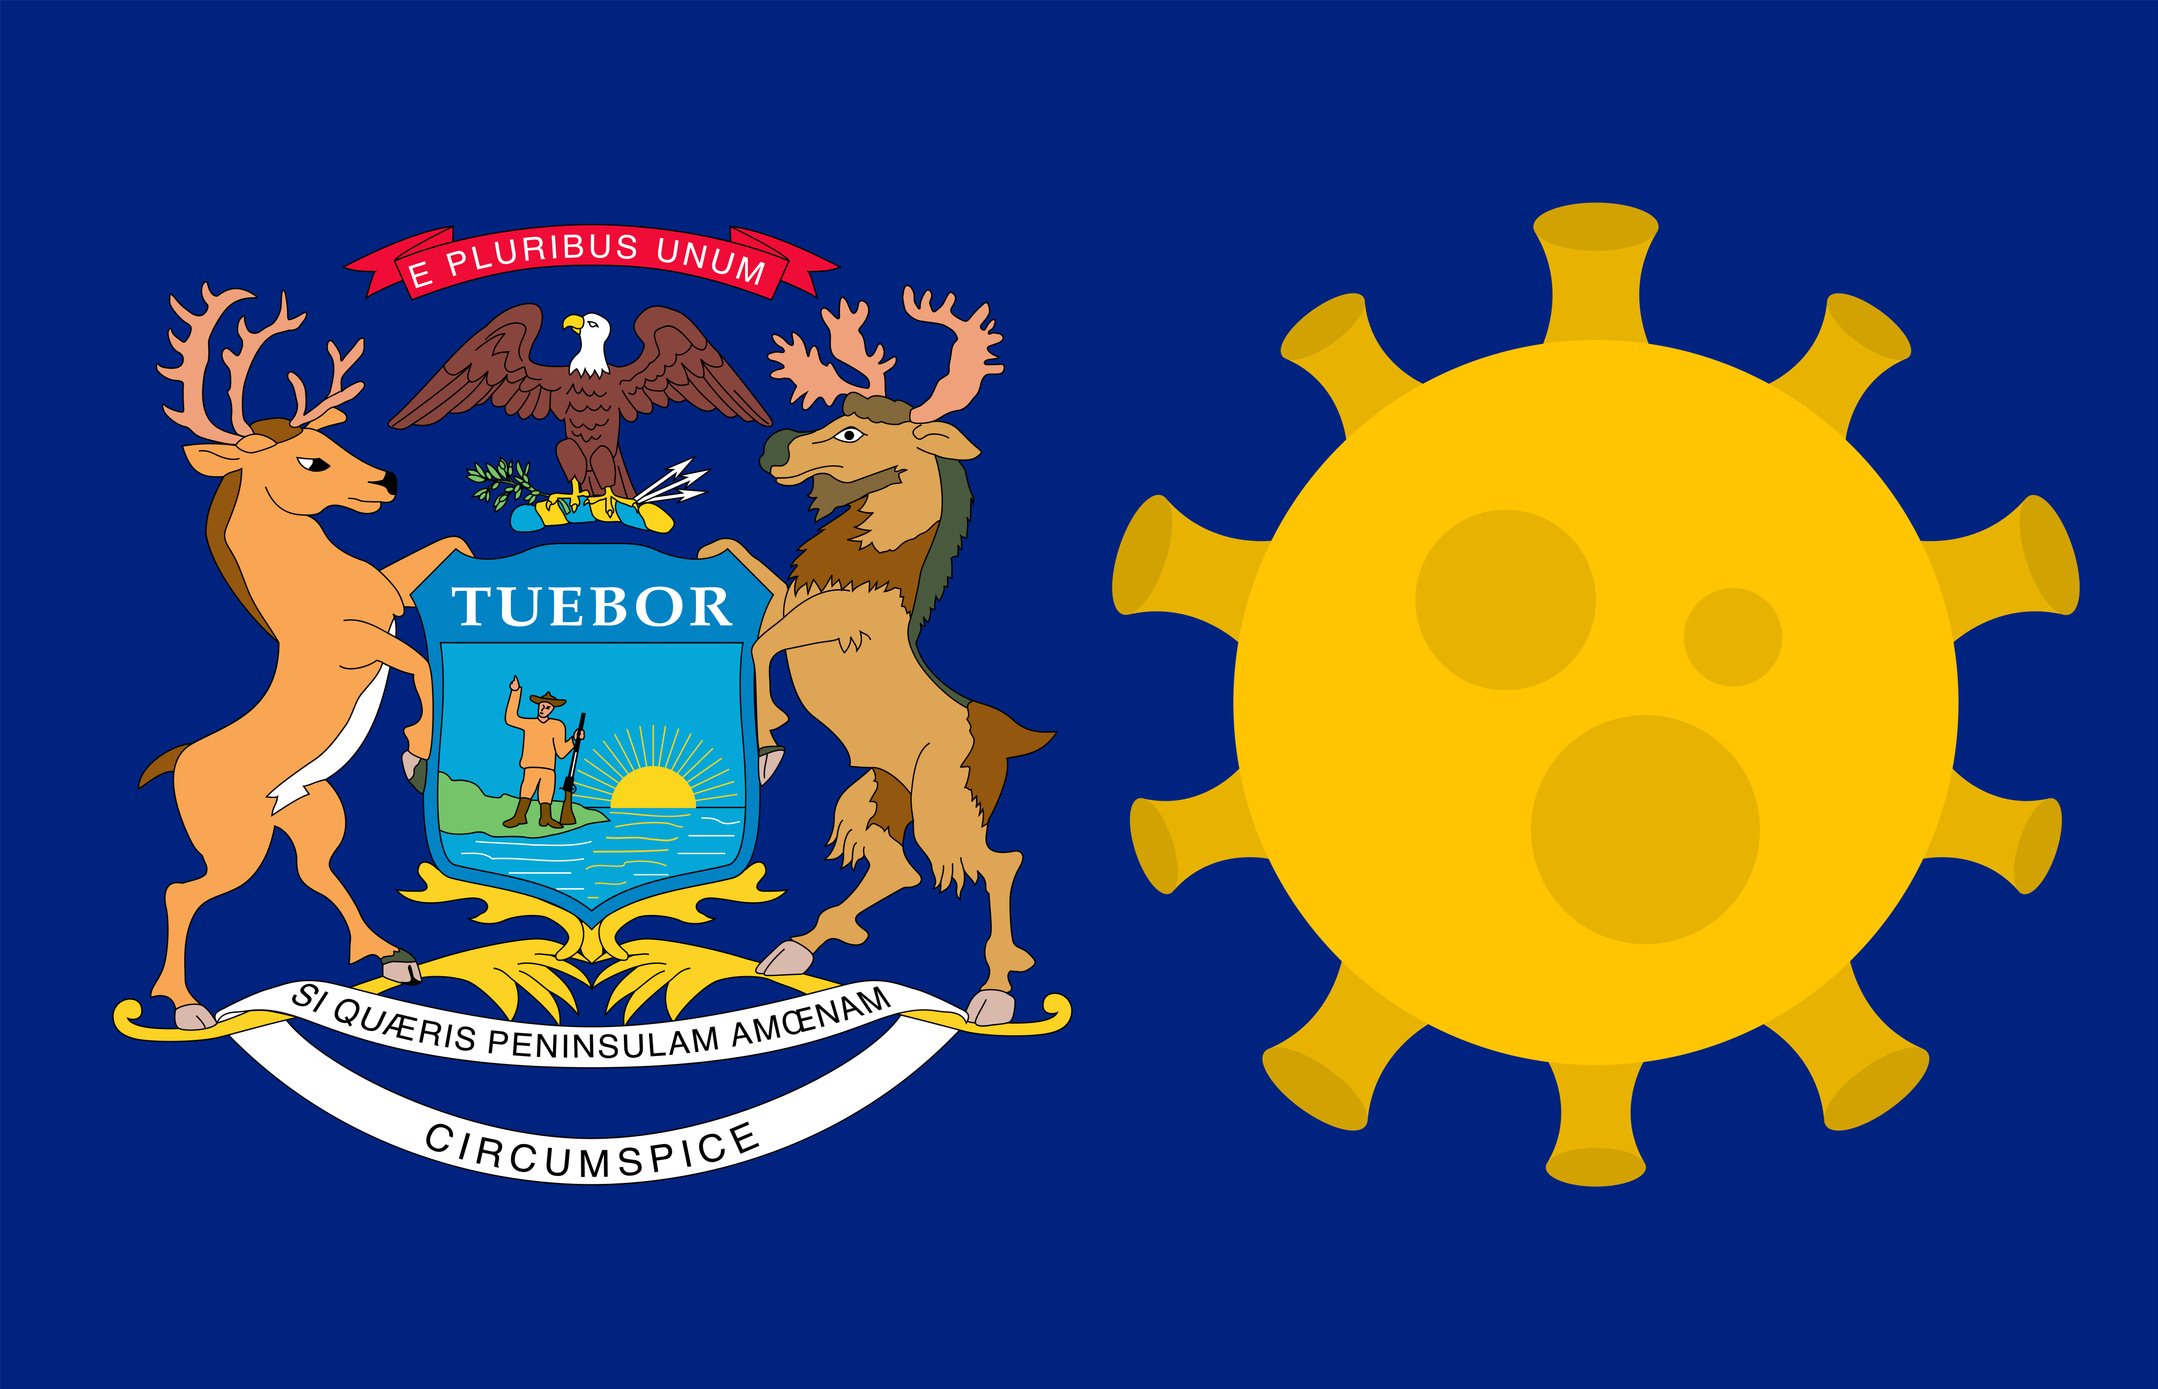 Flag of Michigan with Coronavirus cell icon. Image credit: iStock